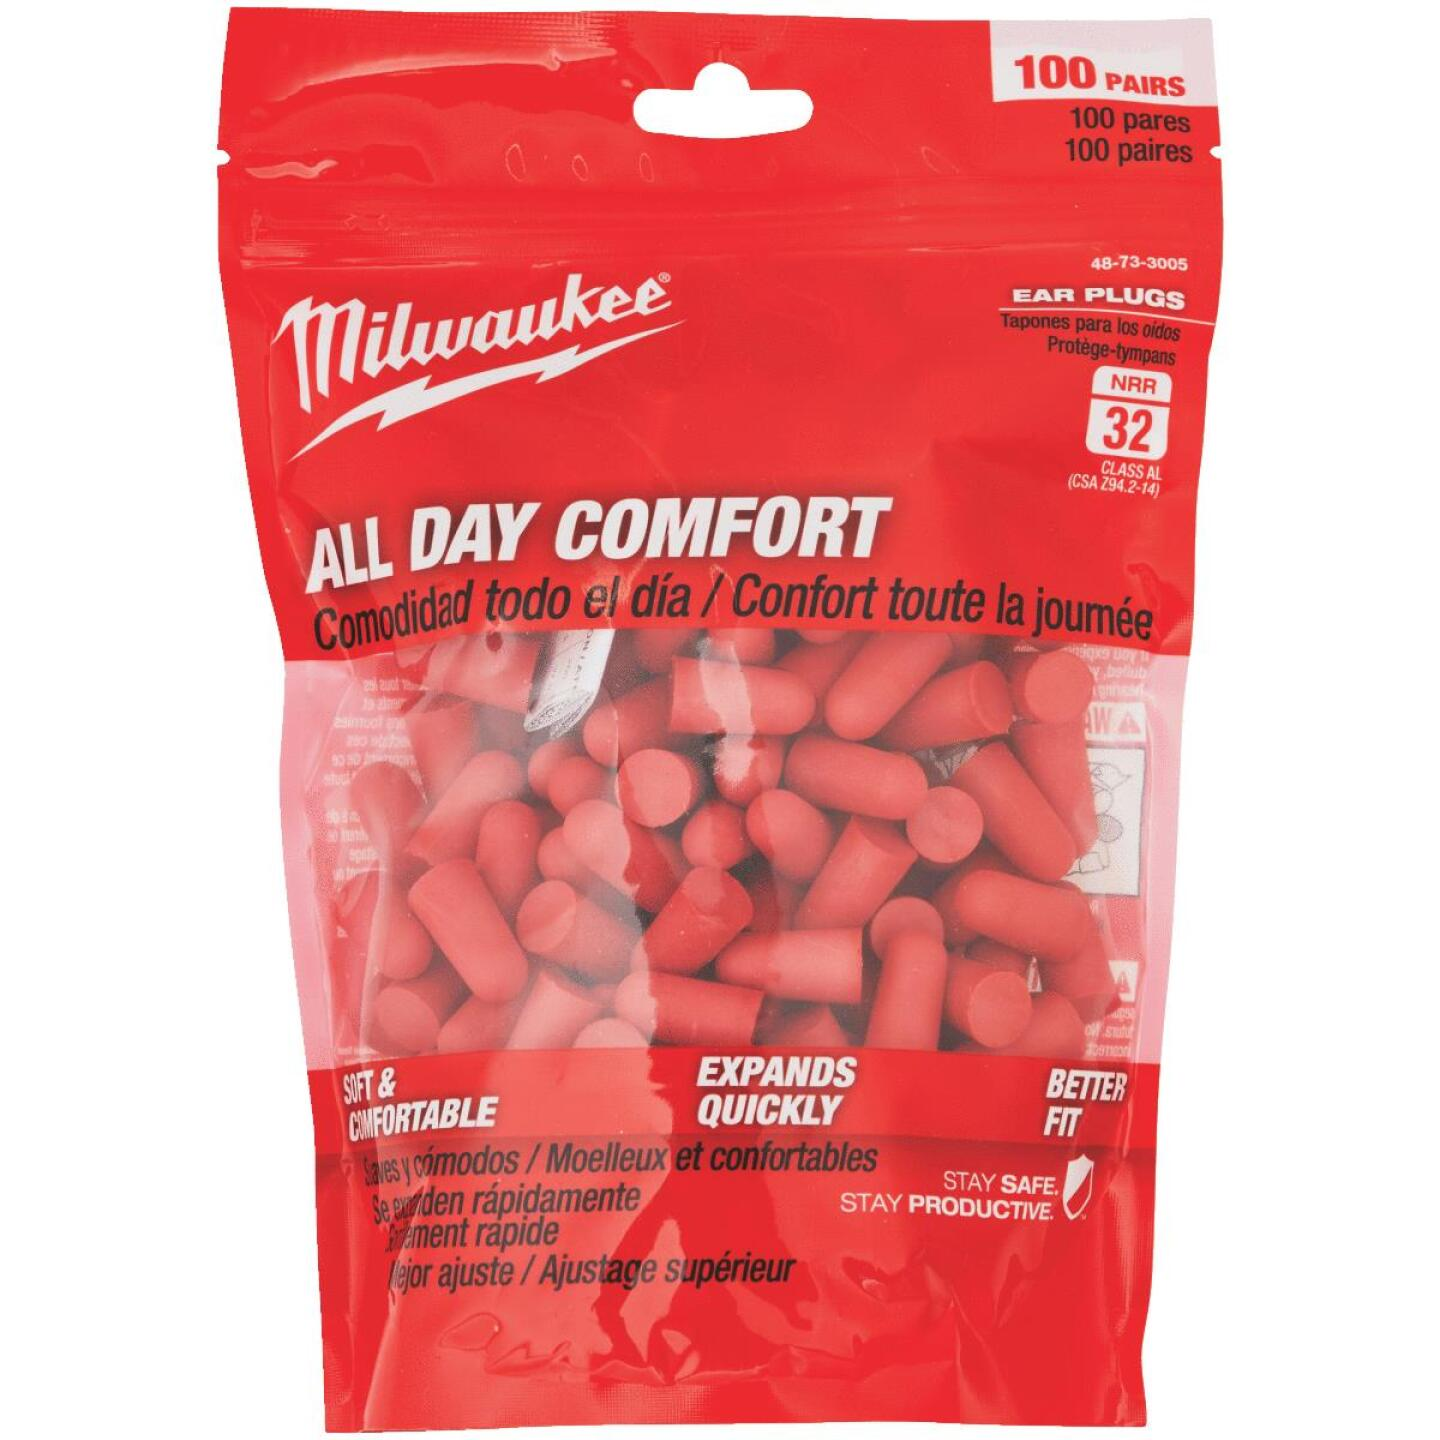 Milwaukee Foam 32 dB Ear Plugs (100-Pair) Image 1